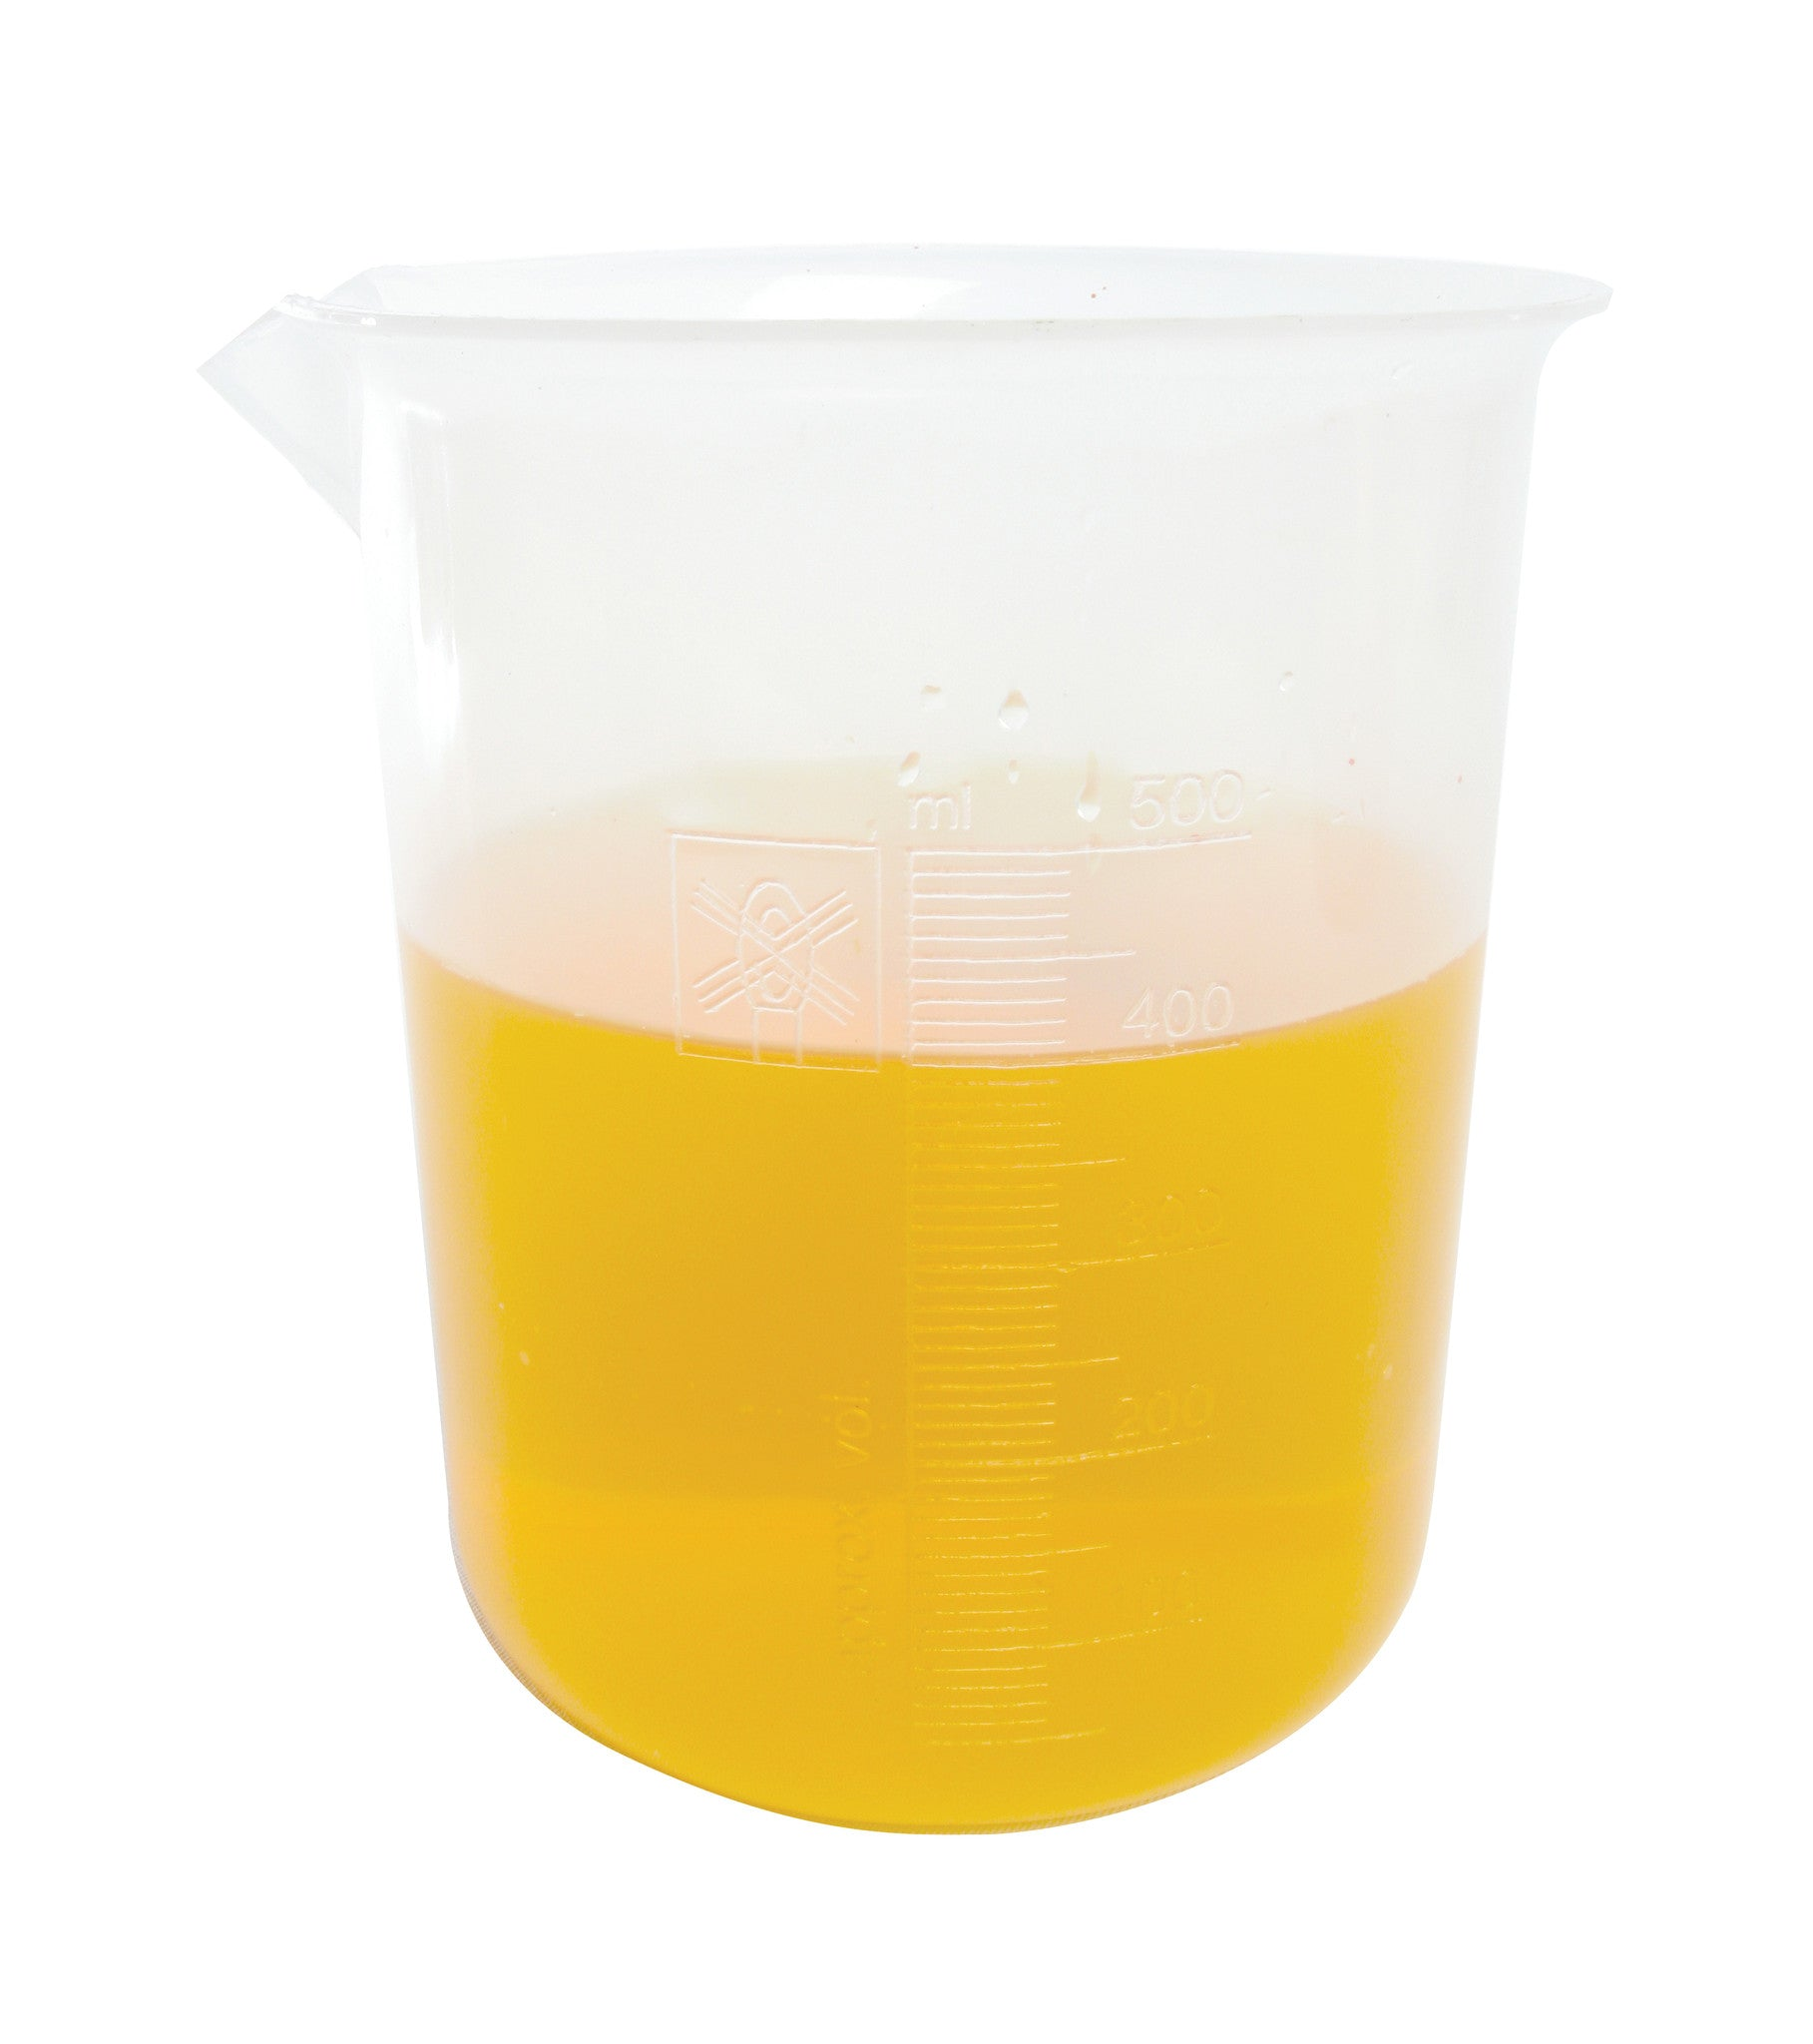 Polypropylene Graduated Beaker - 500 ml - The Science Shop